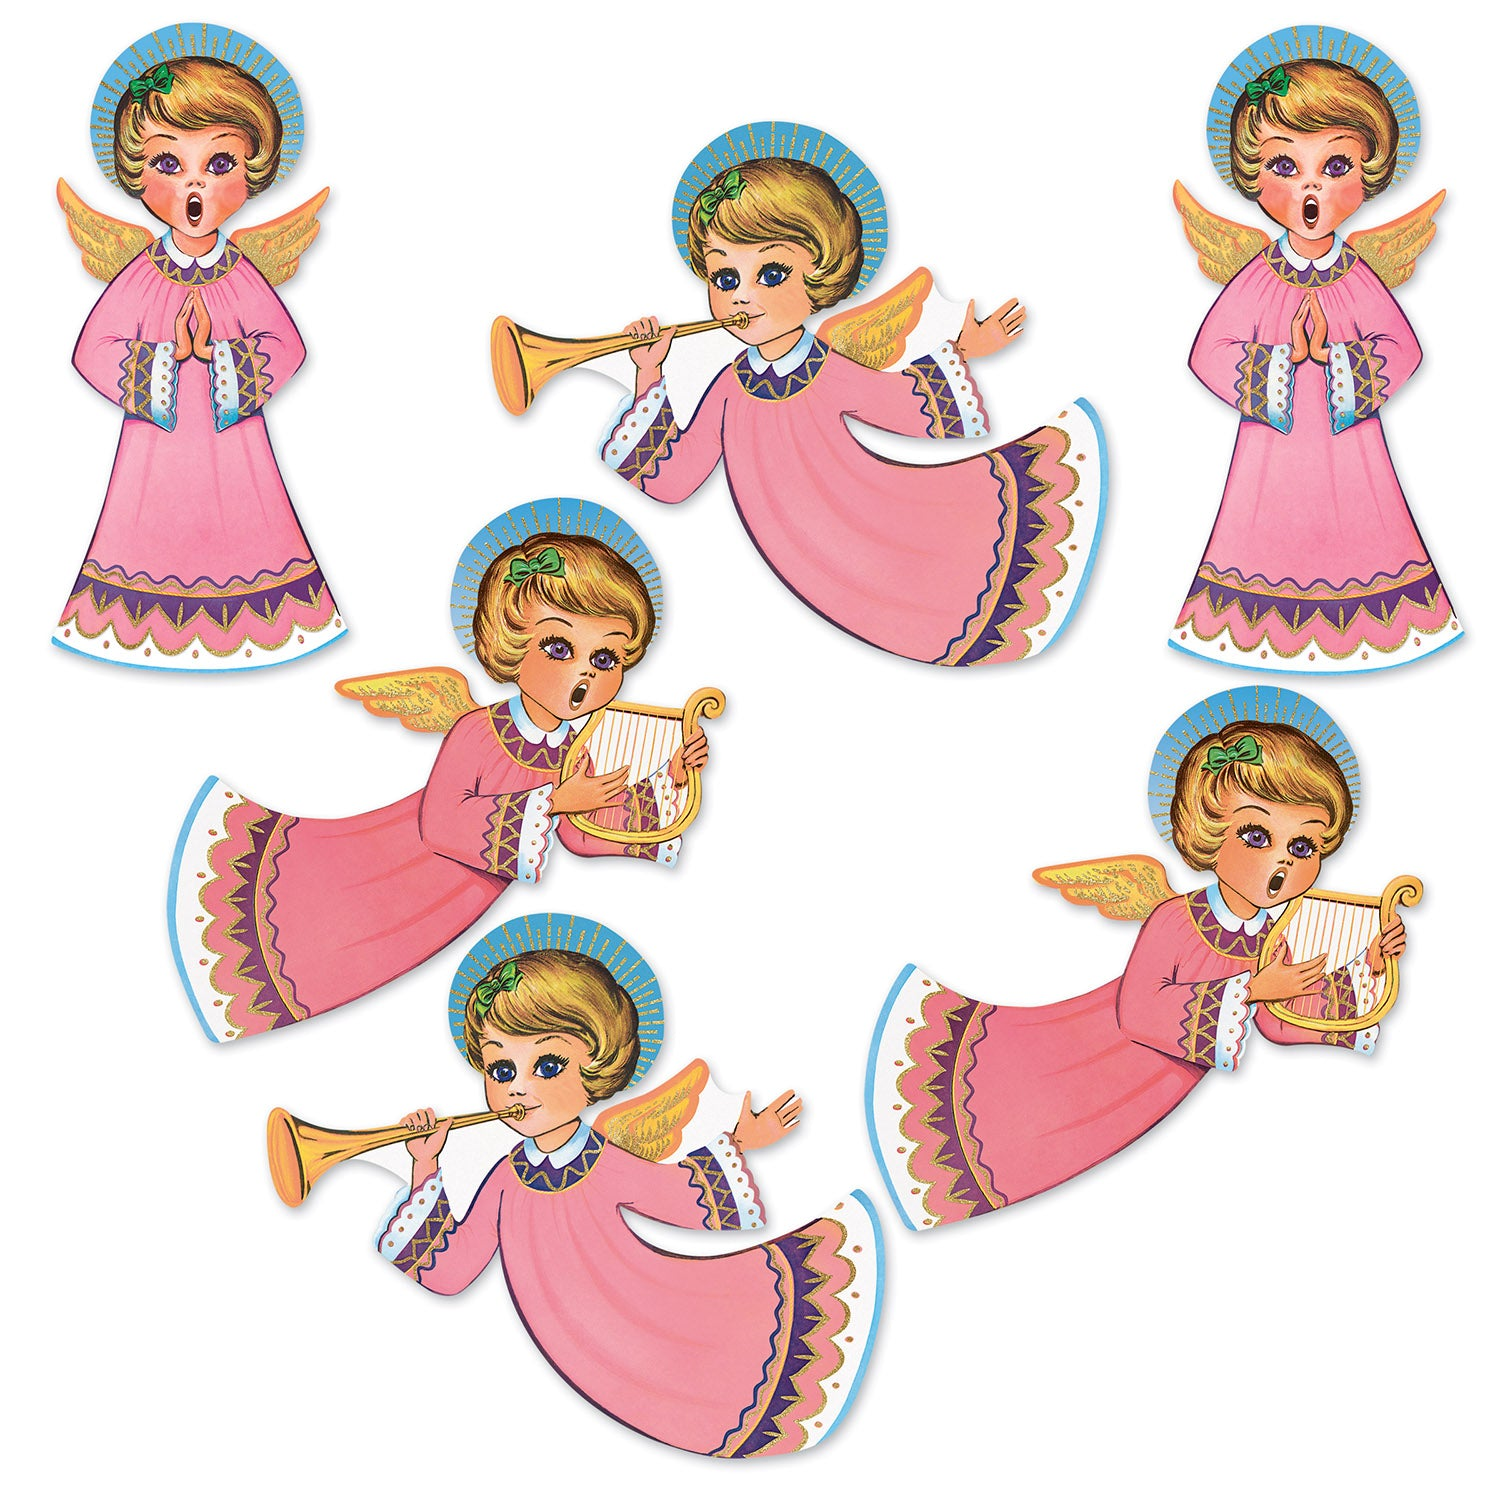 Vintage Christmas Gltrd Angel Cutouts (6/Pkg) by Beistle - Winter/Christmas Theme Decorations